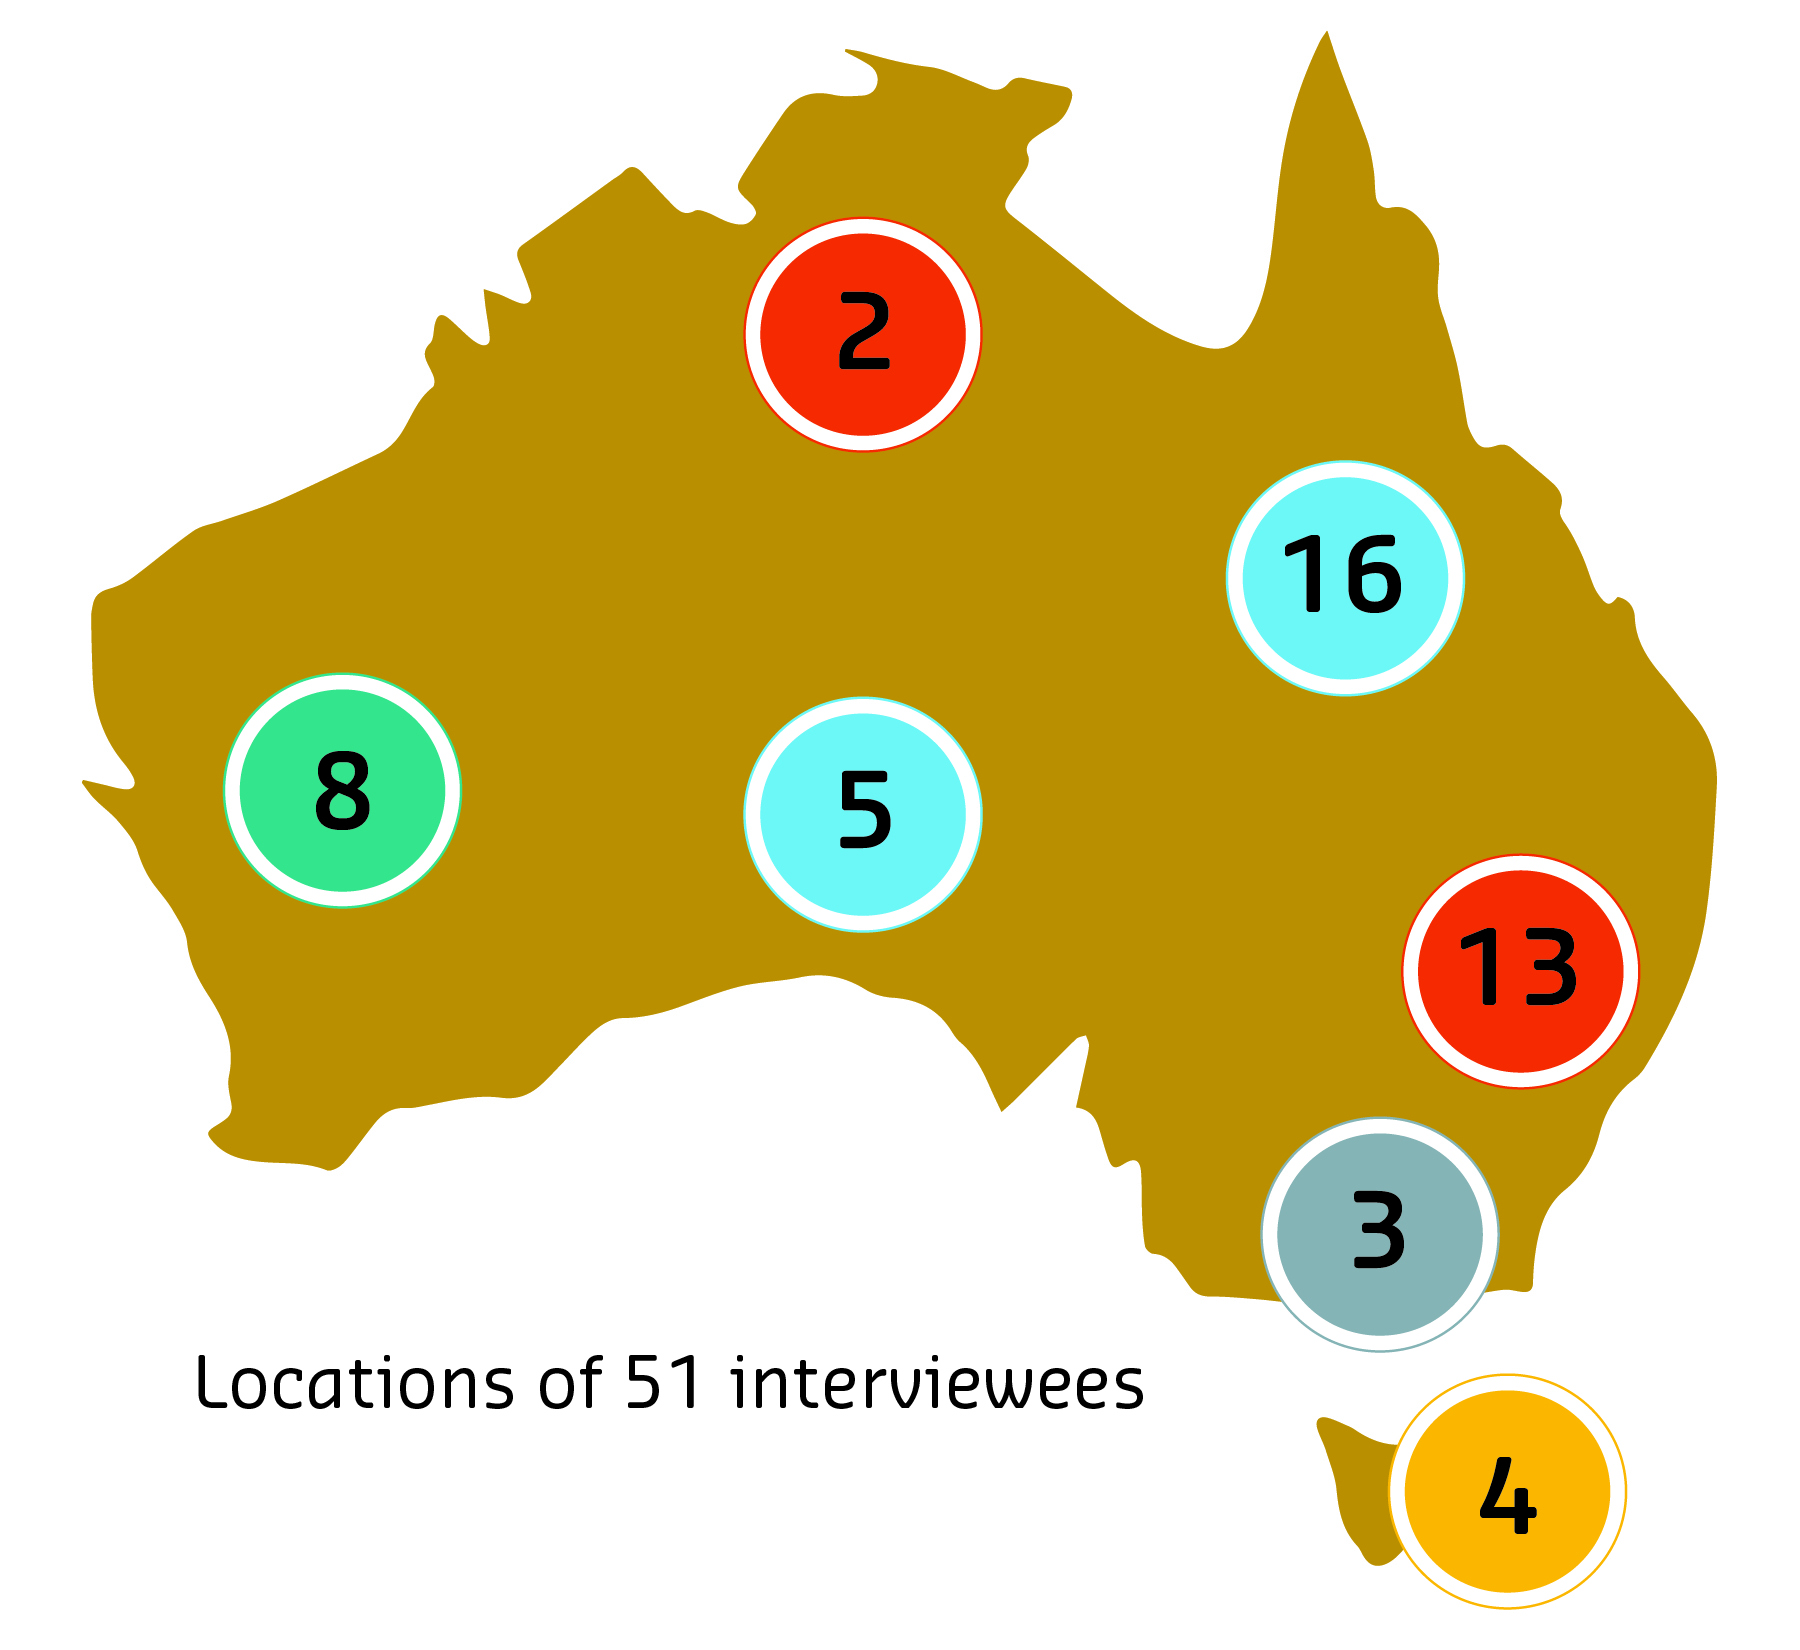 Map of locations of 51 interviewees